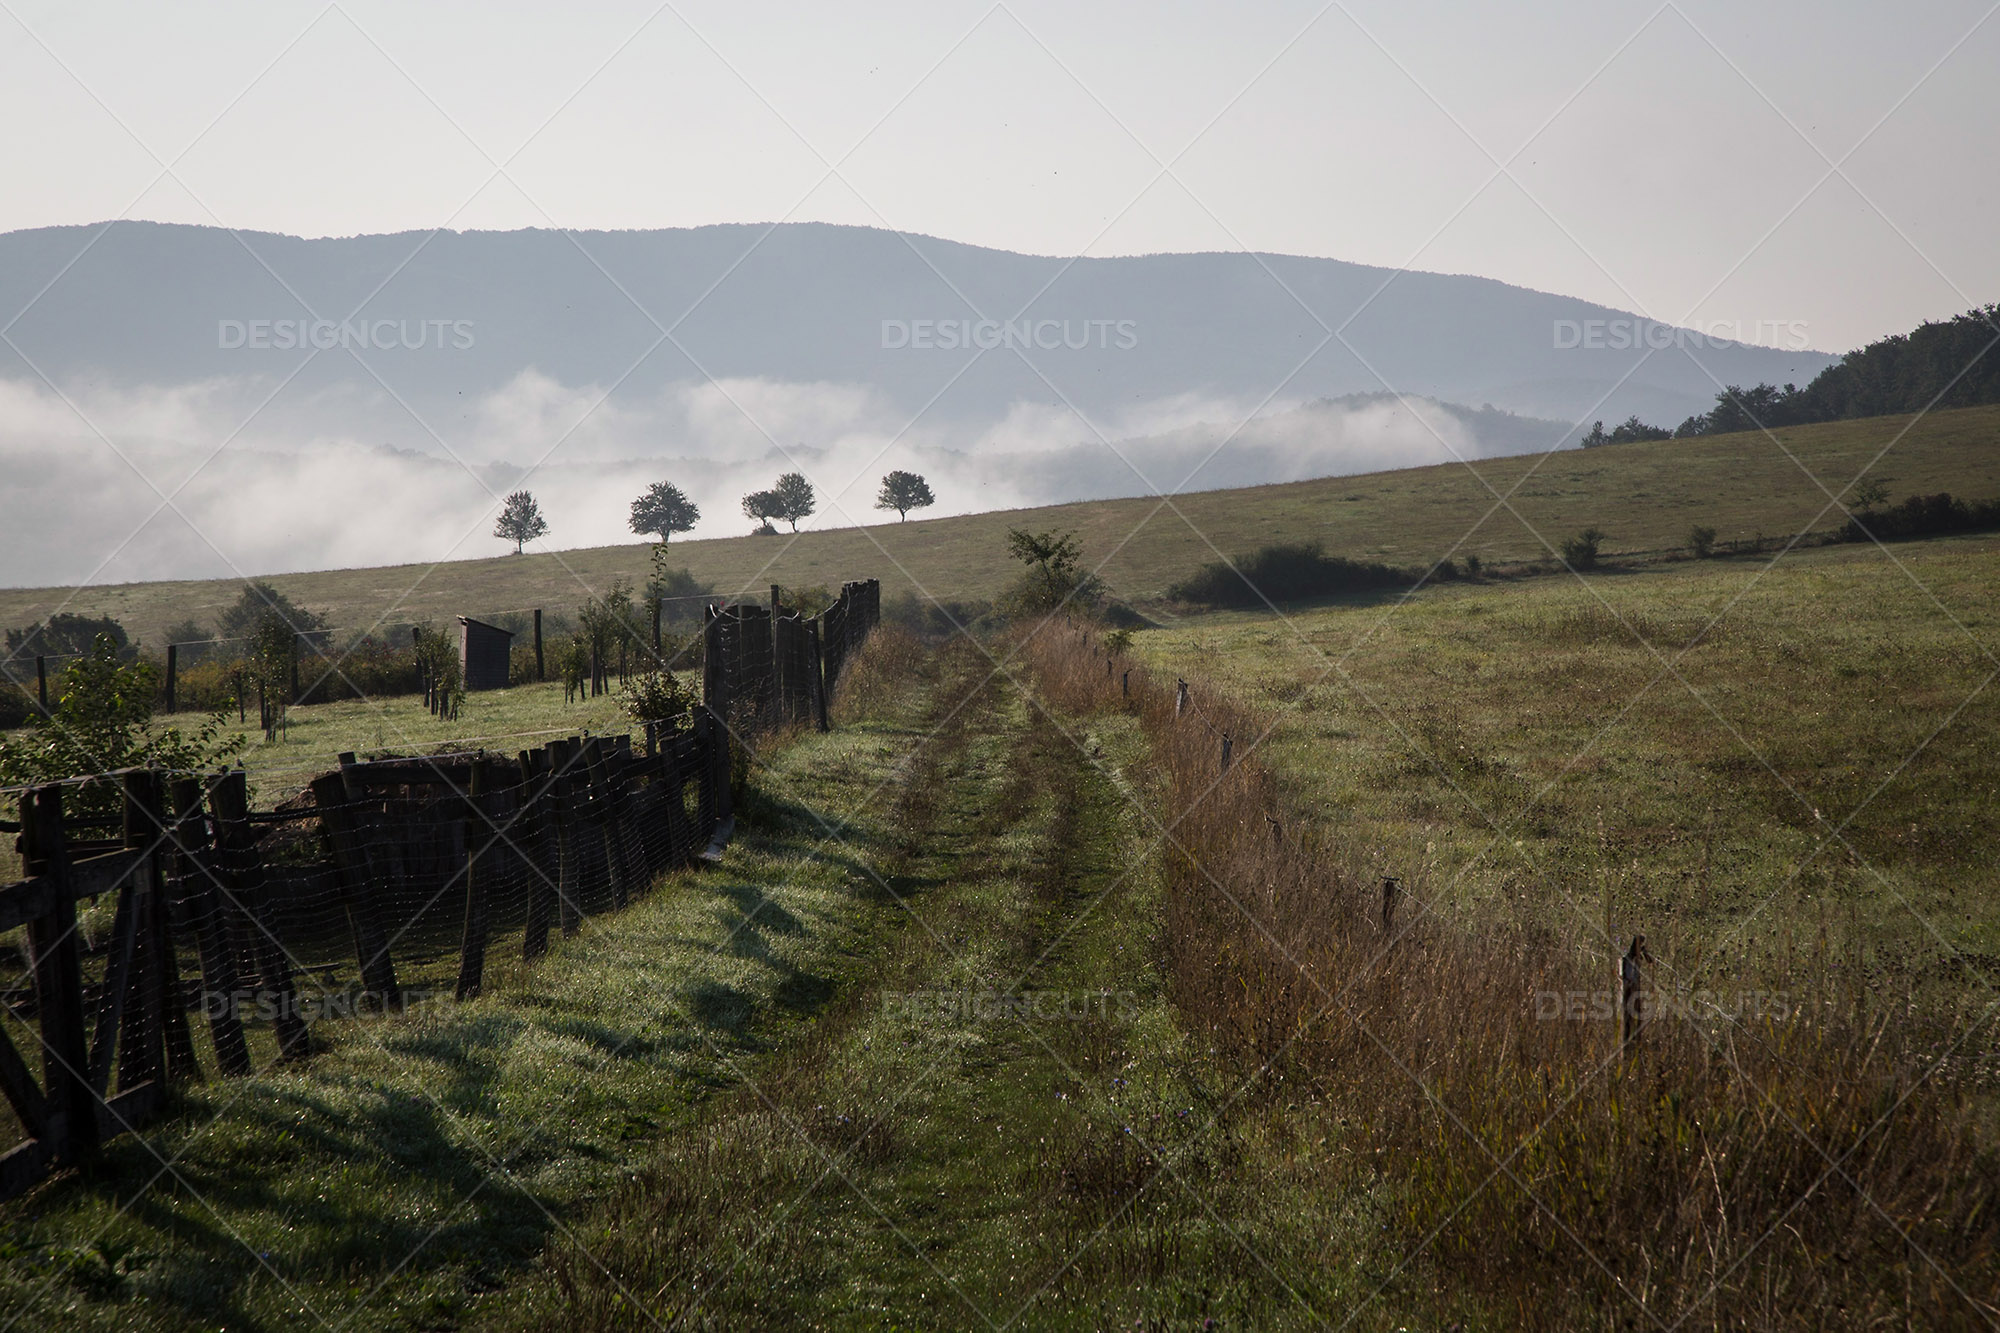 A View Down A Farm Track To Four Trees In The Morning Mist